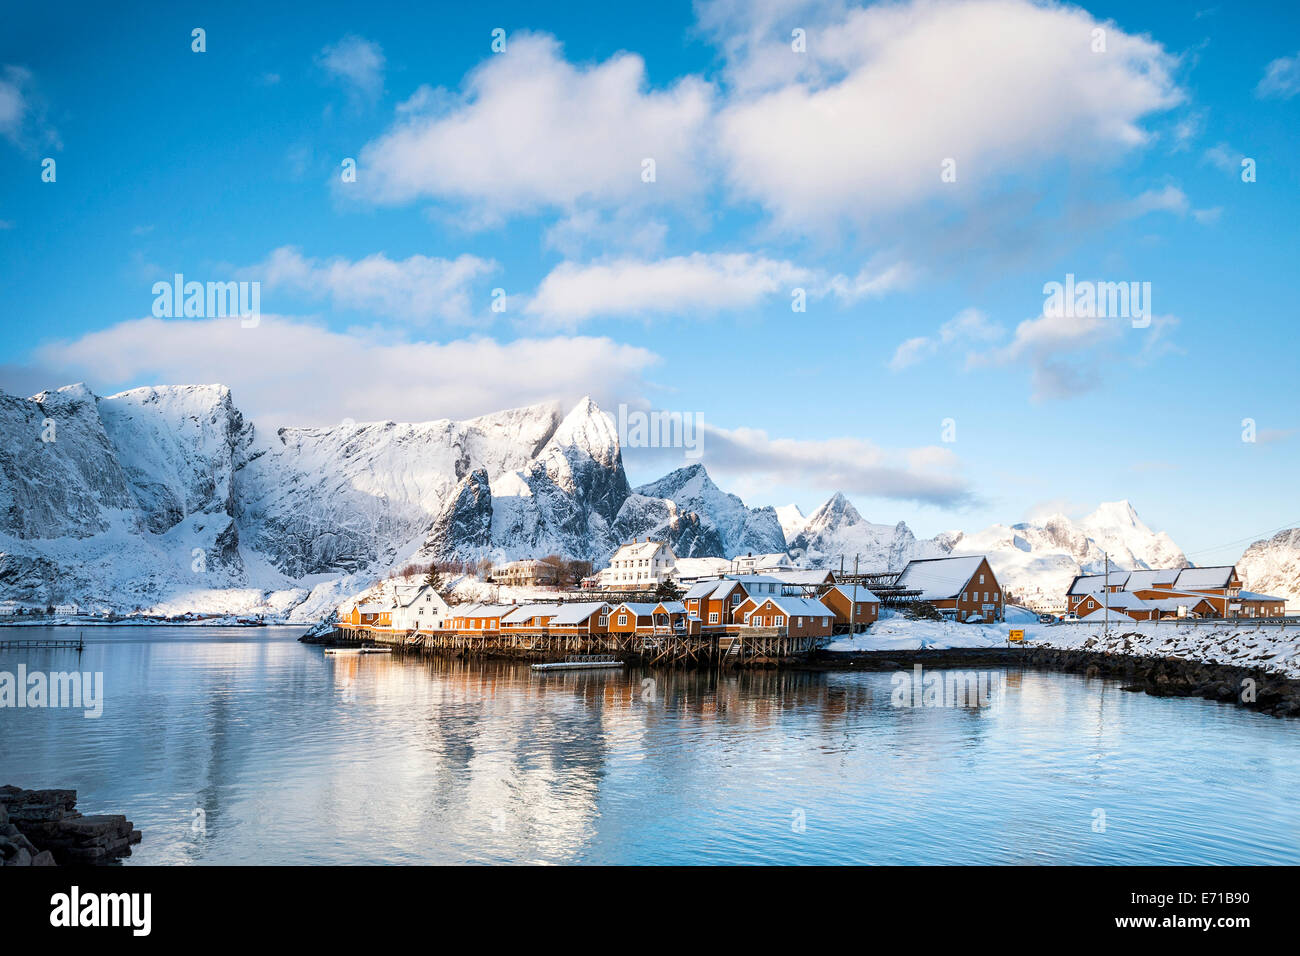 The village of Sakrisoy on a bright winter's day - Stock Image